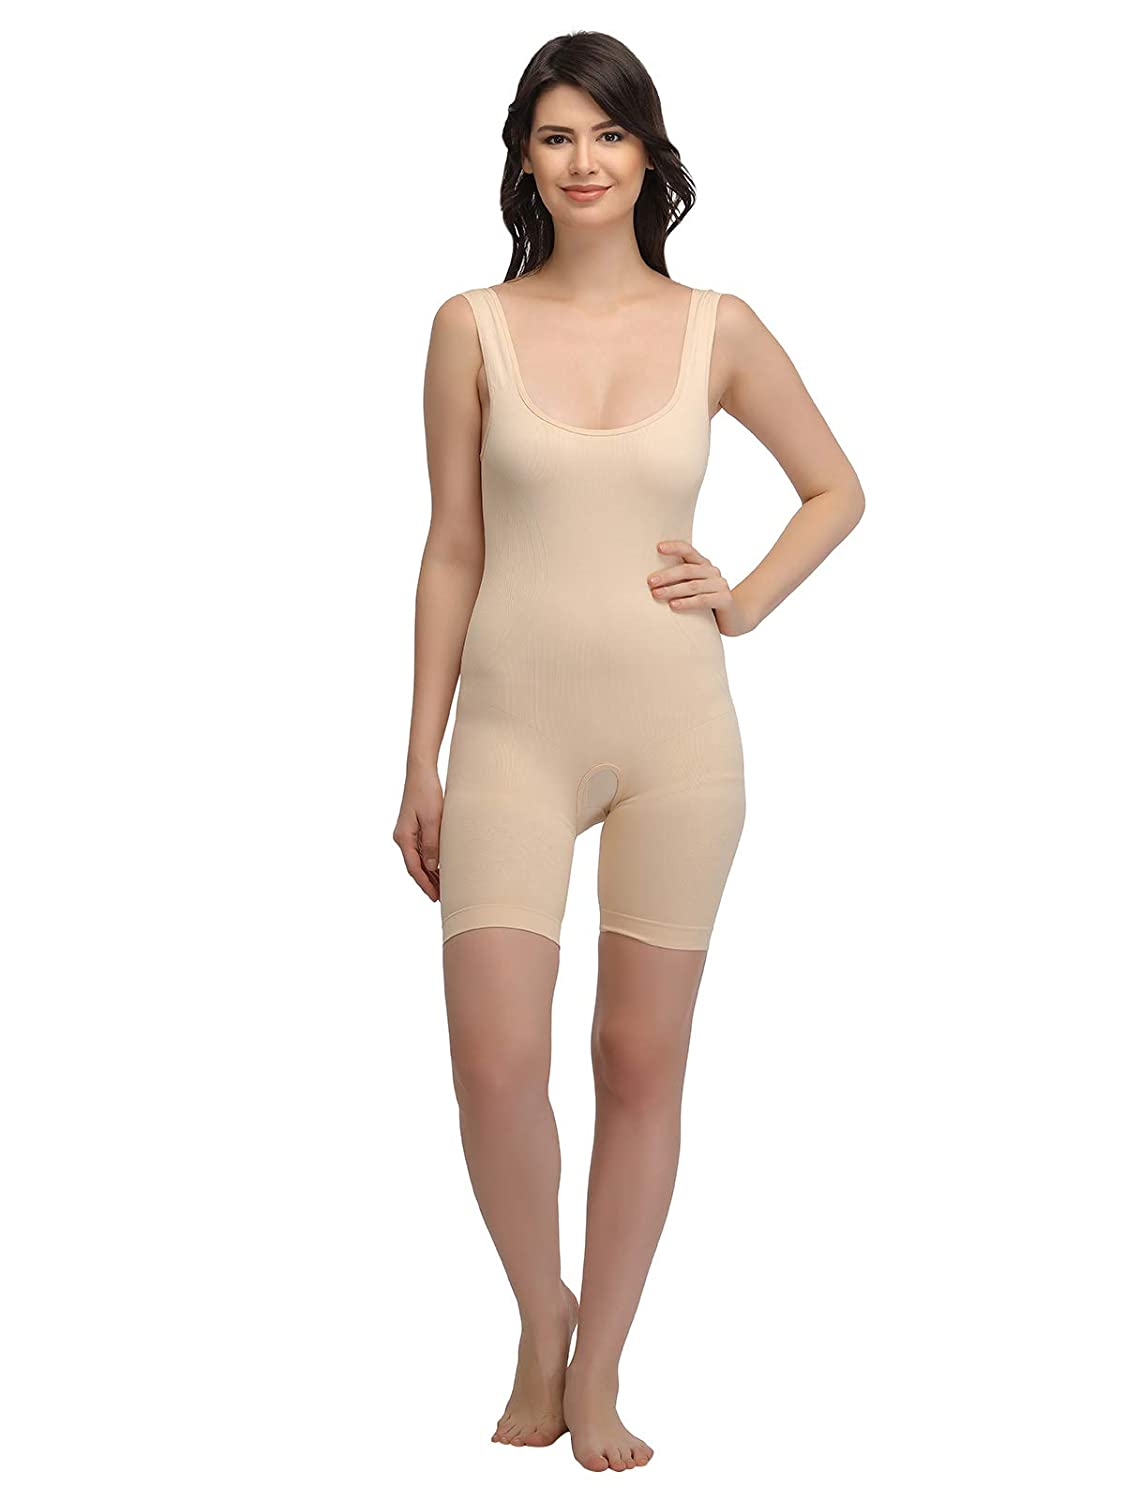 d1000d17eea00 Clovia Women s Laser-Cut No-Panty Lines High Compression Body Suit - Skin   Amazon.in  Clothing   Accessories